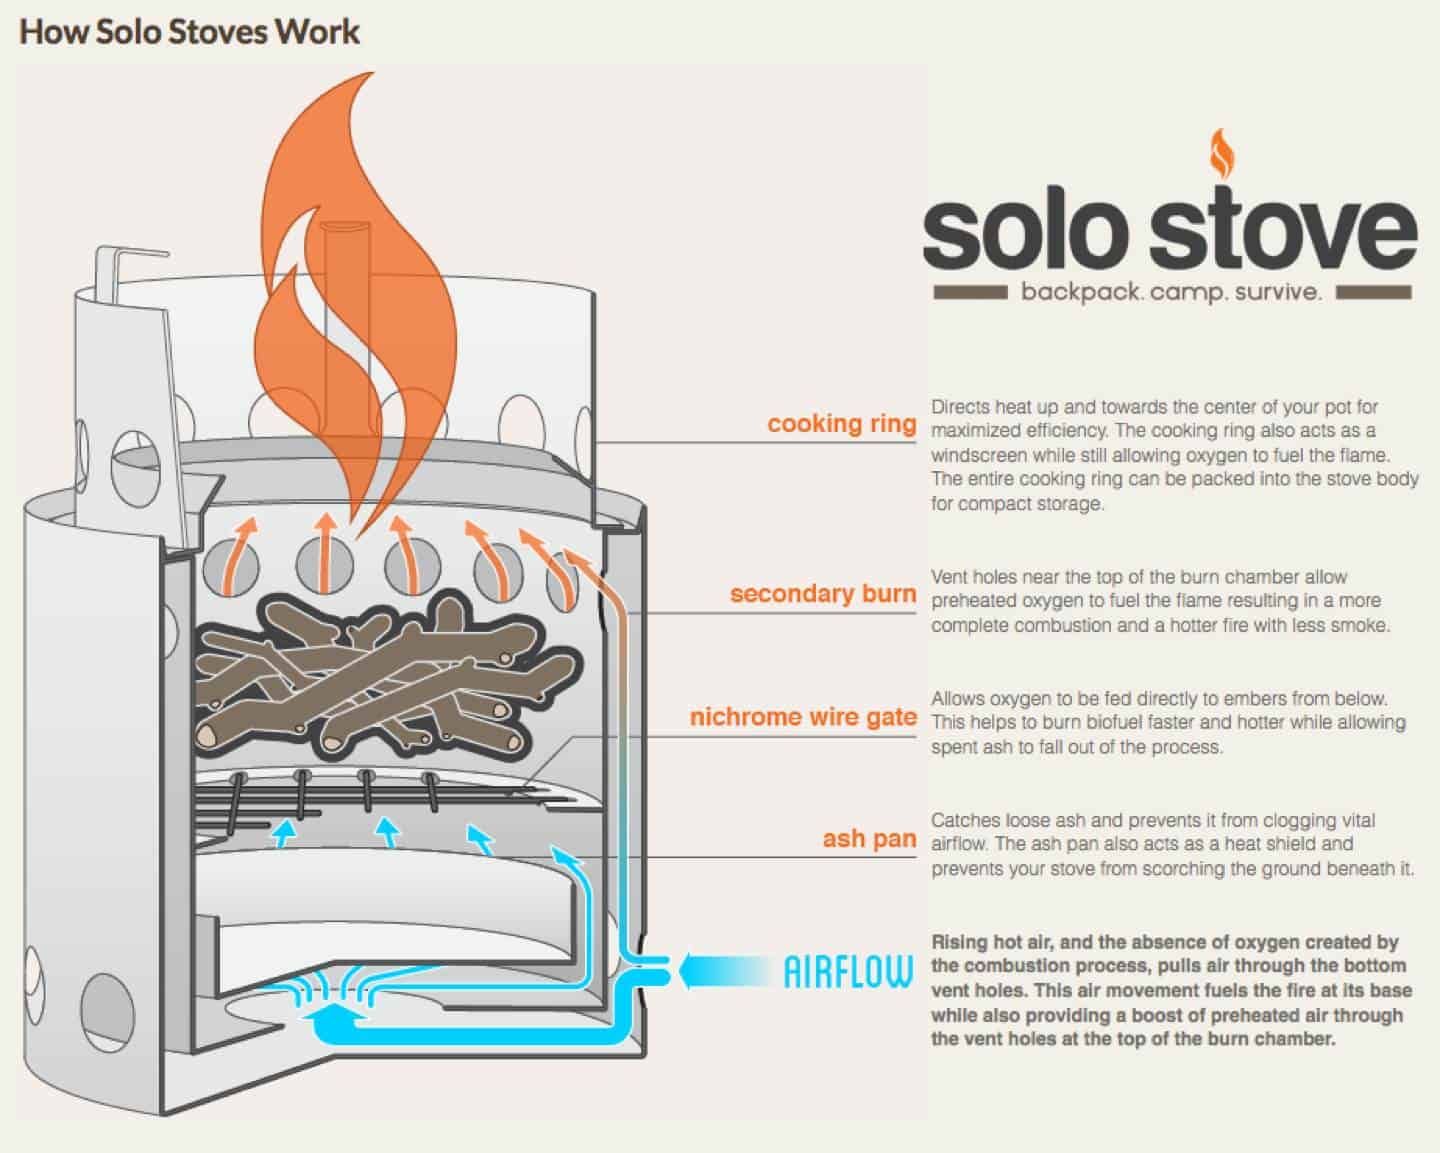 How Solo stoves work